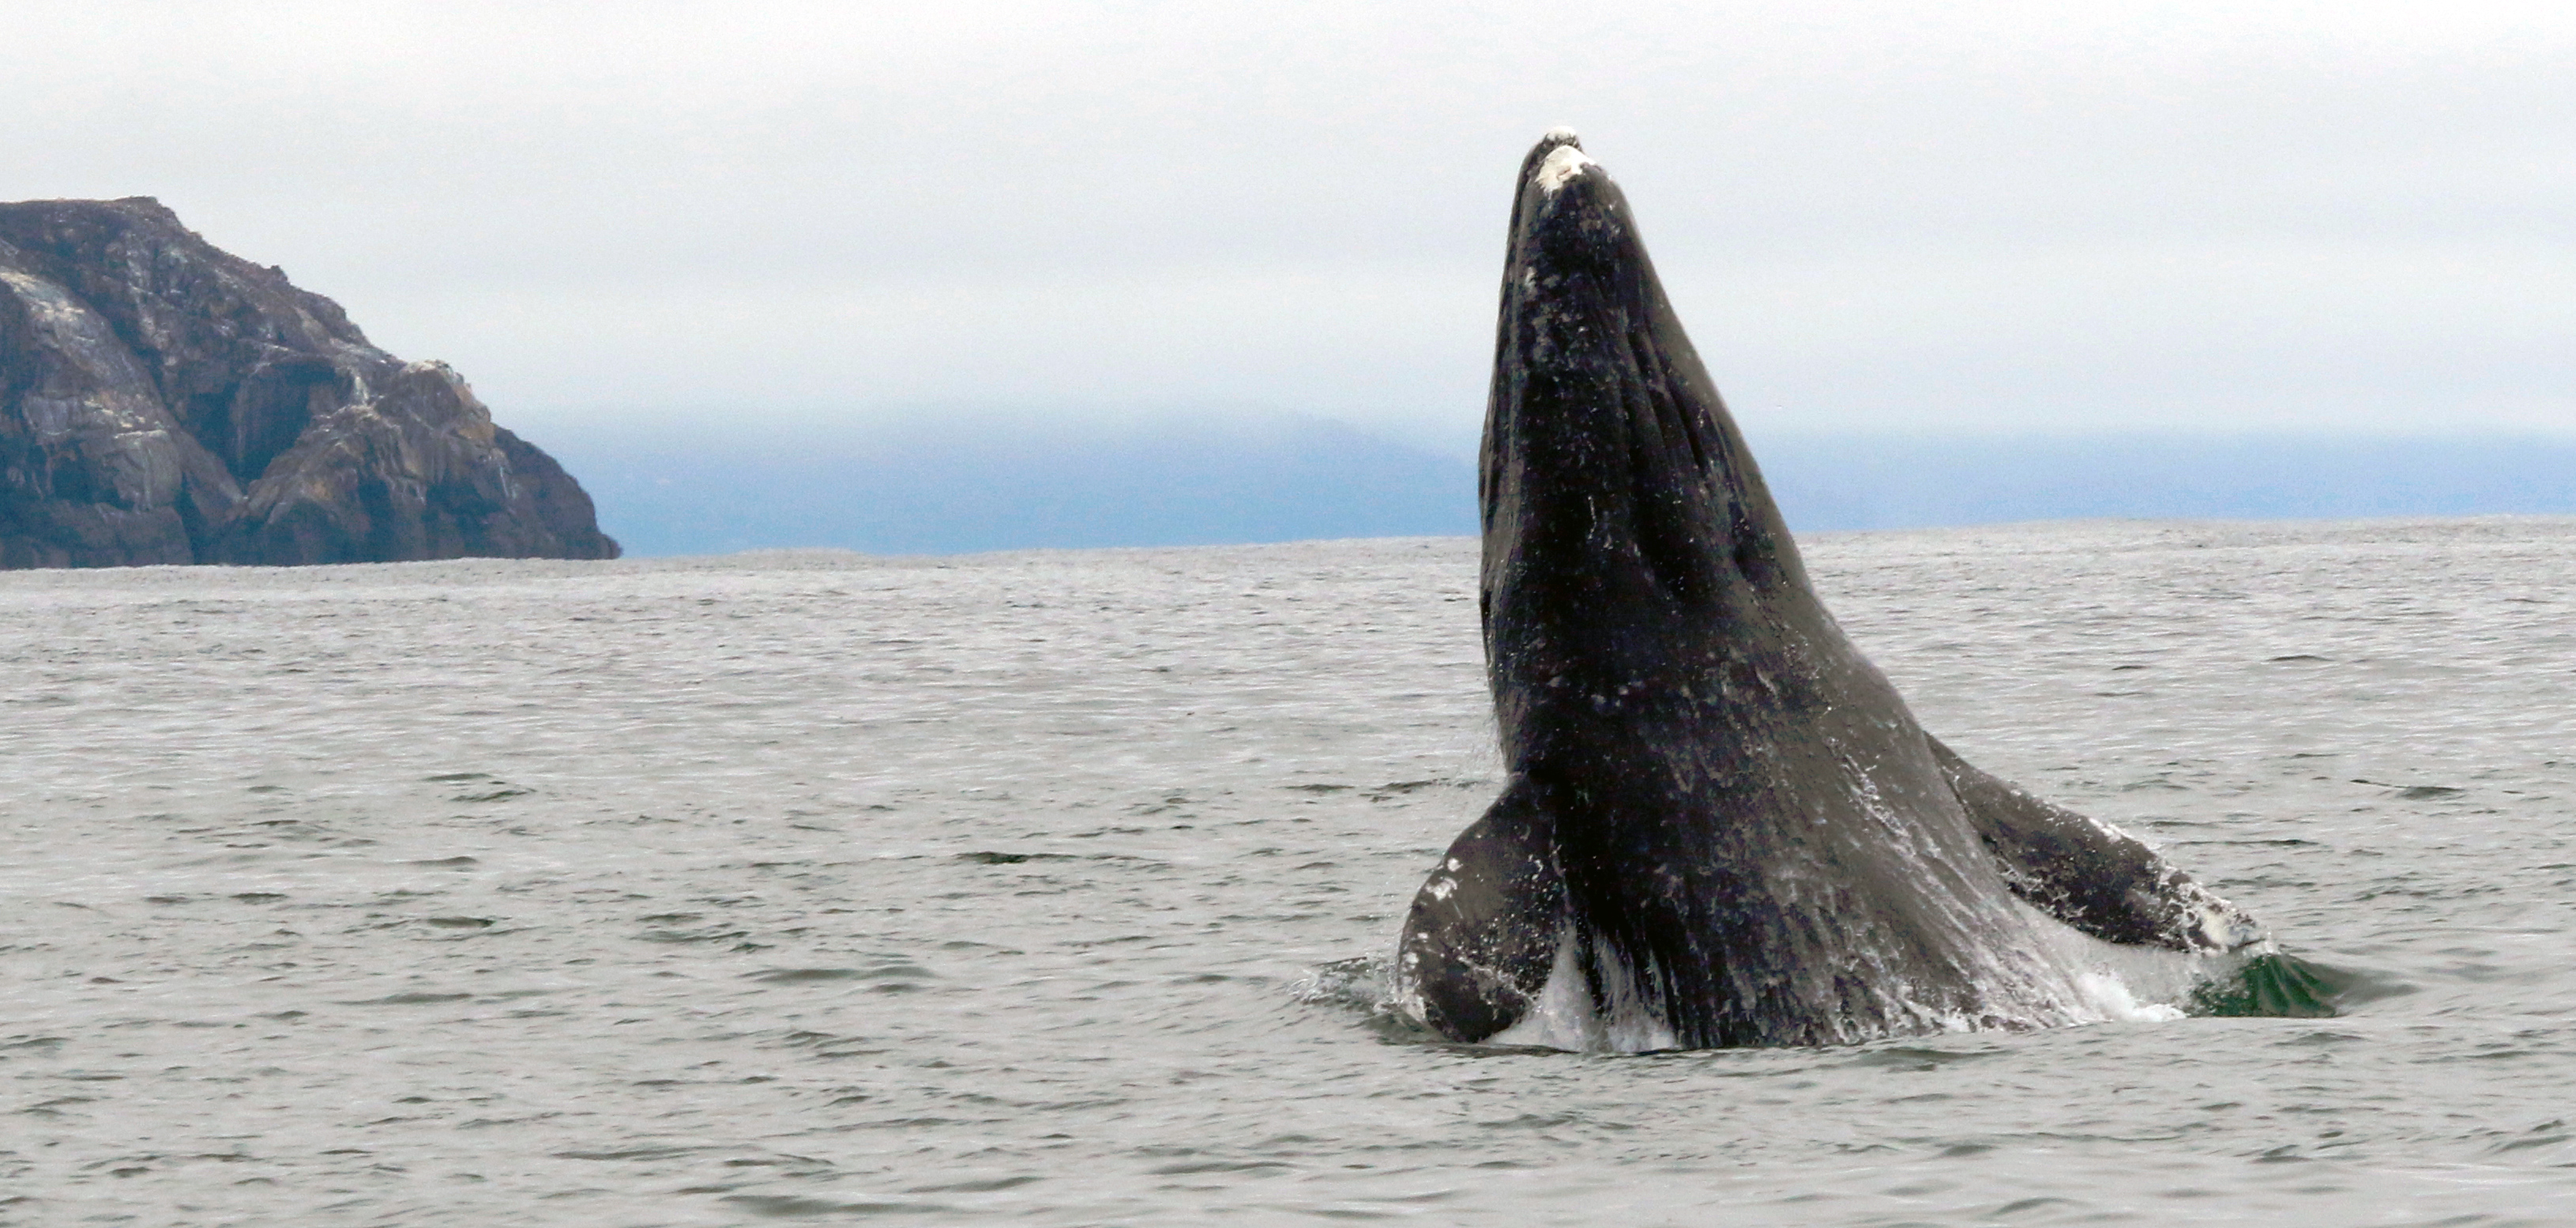 Gray whale breaches